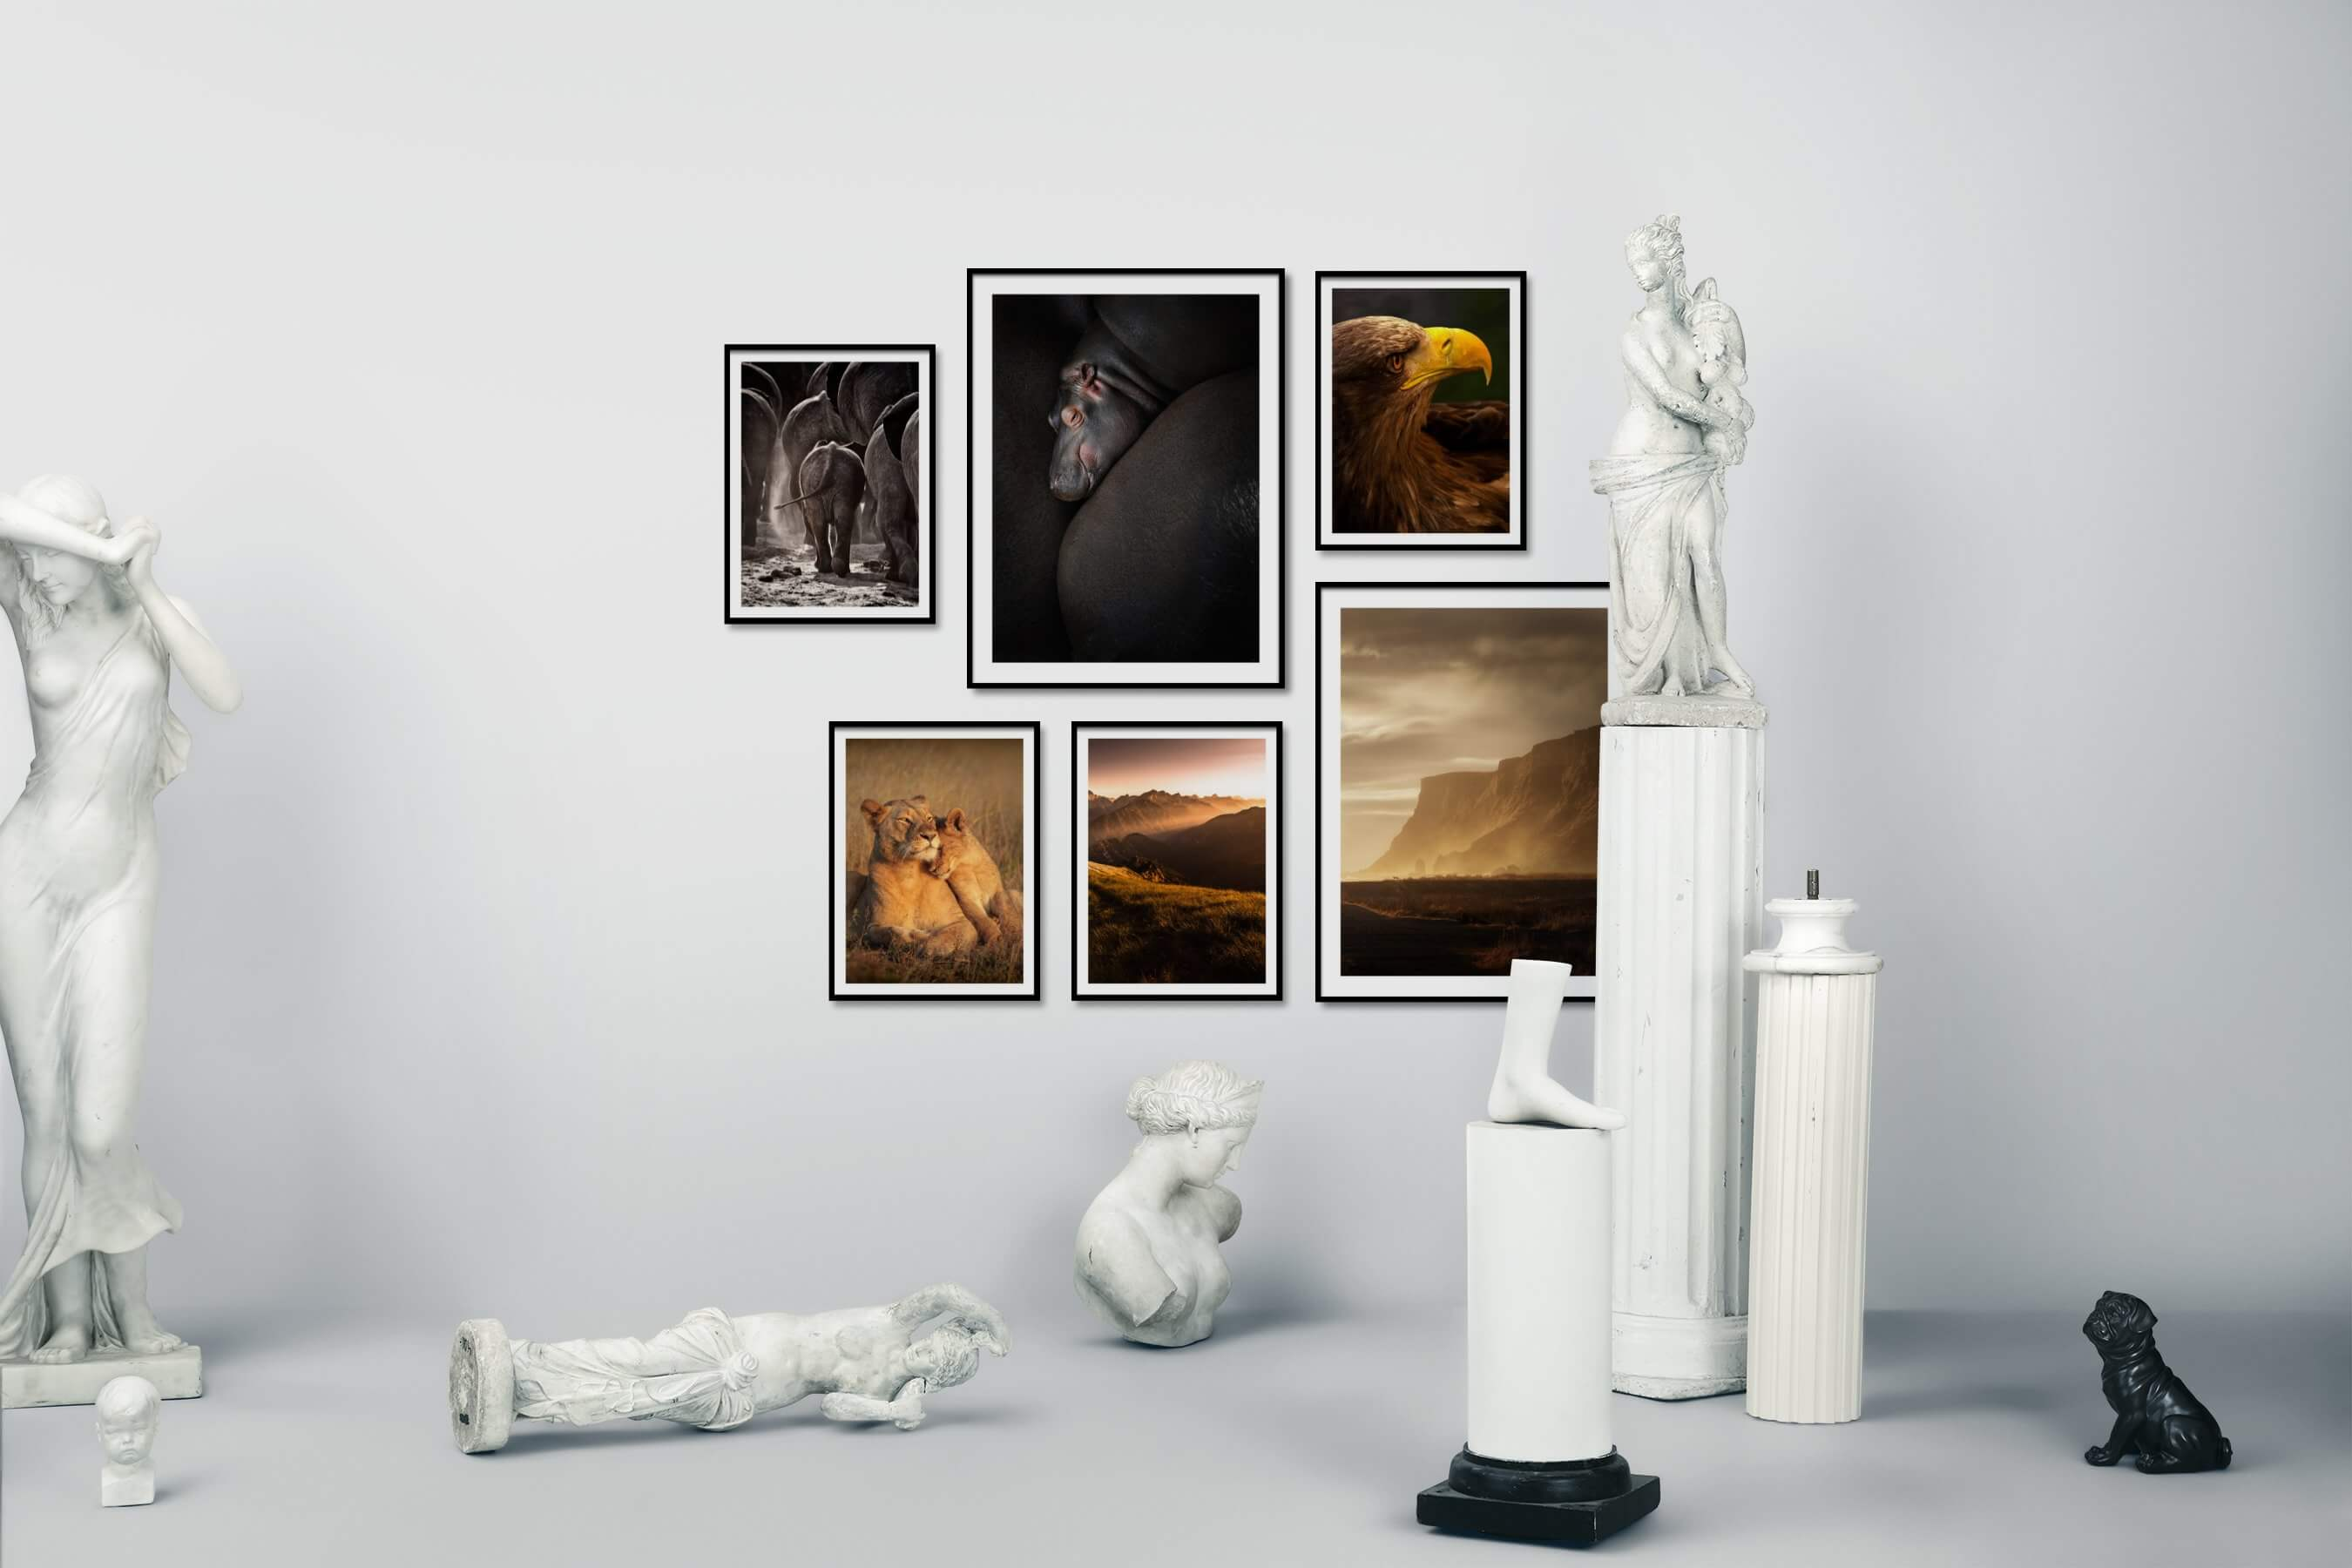 Gallery wall idea with six framed pictures arranged on a wall depicting Animals, For the Moderate, and Nature